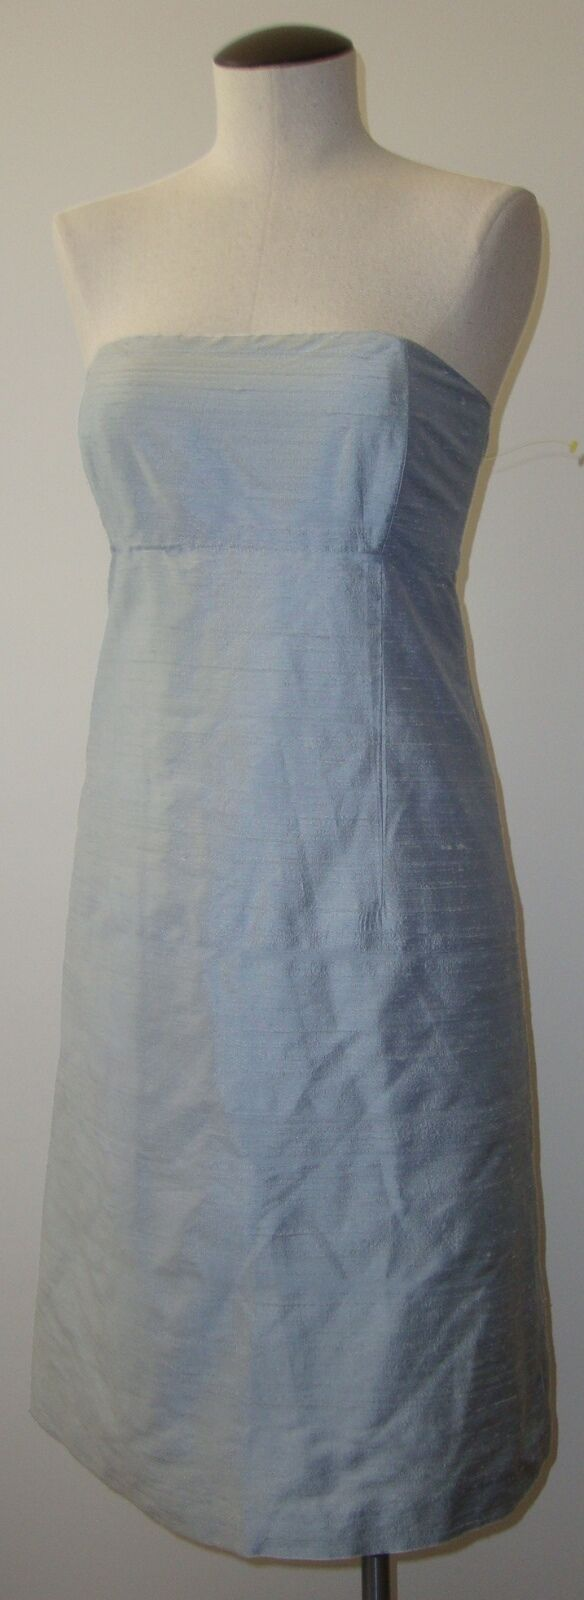 VANESSA FOX STRAPLESS ICE AQUA Blau RAW SILK DRESS SZ 2 EUC STUNNING